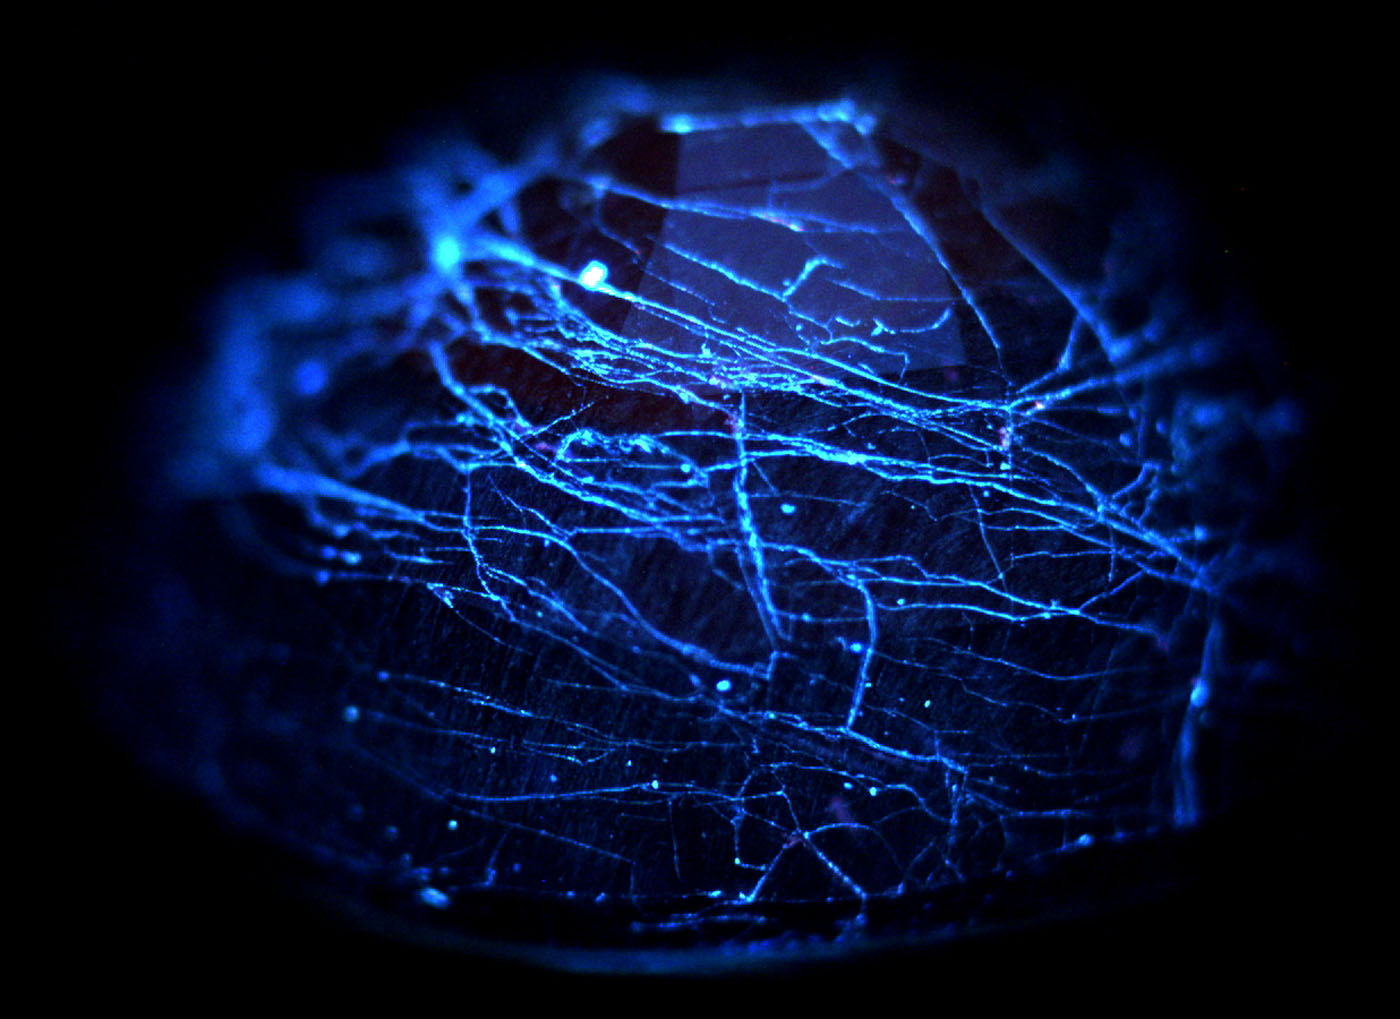 Figure 13. DiamondView™ image of a cobalt-doped glass-filled sapphire, showing chalky blue fluorescence from the glass-filled fissures. (Image: GIT).